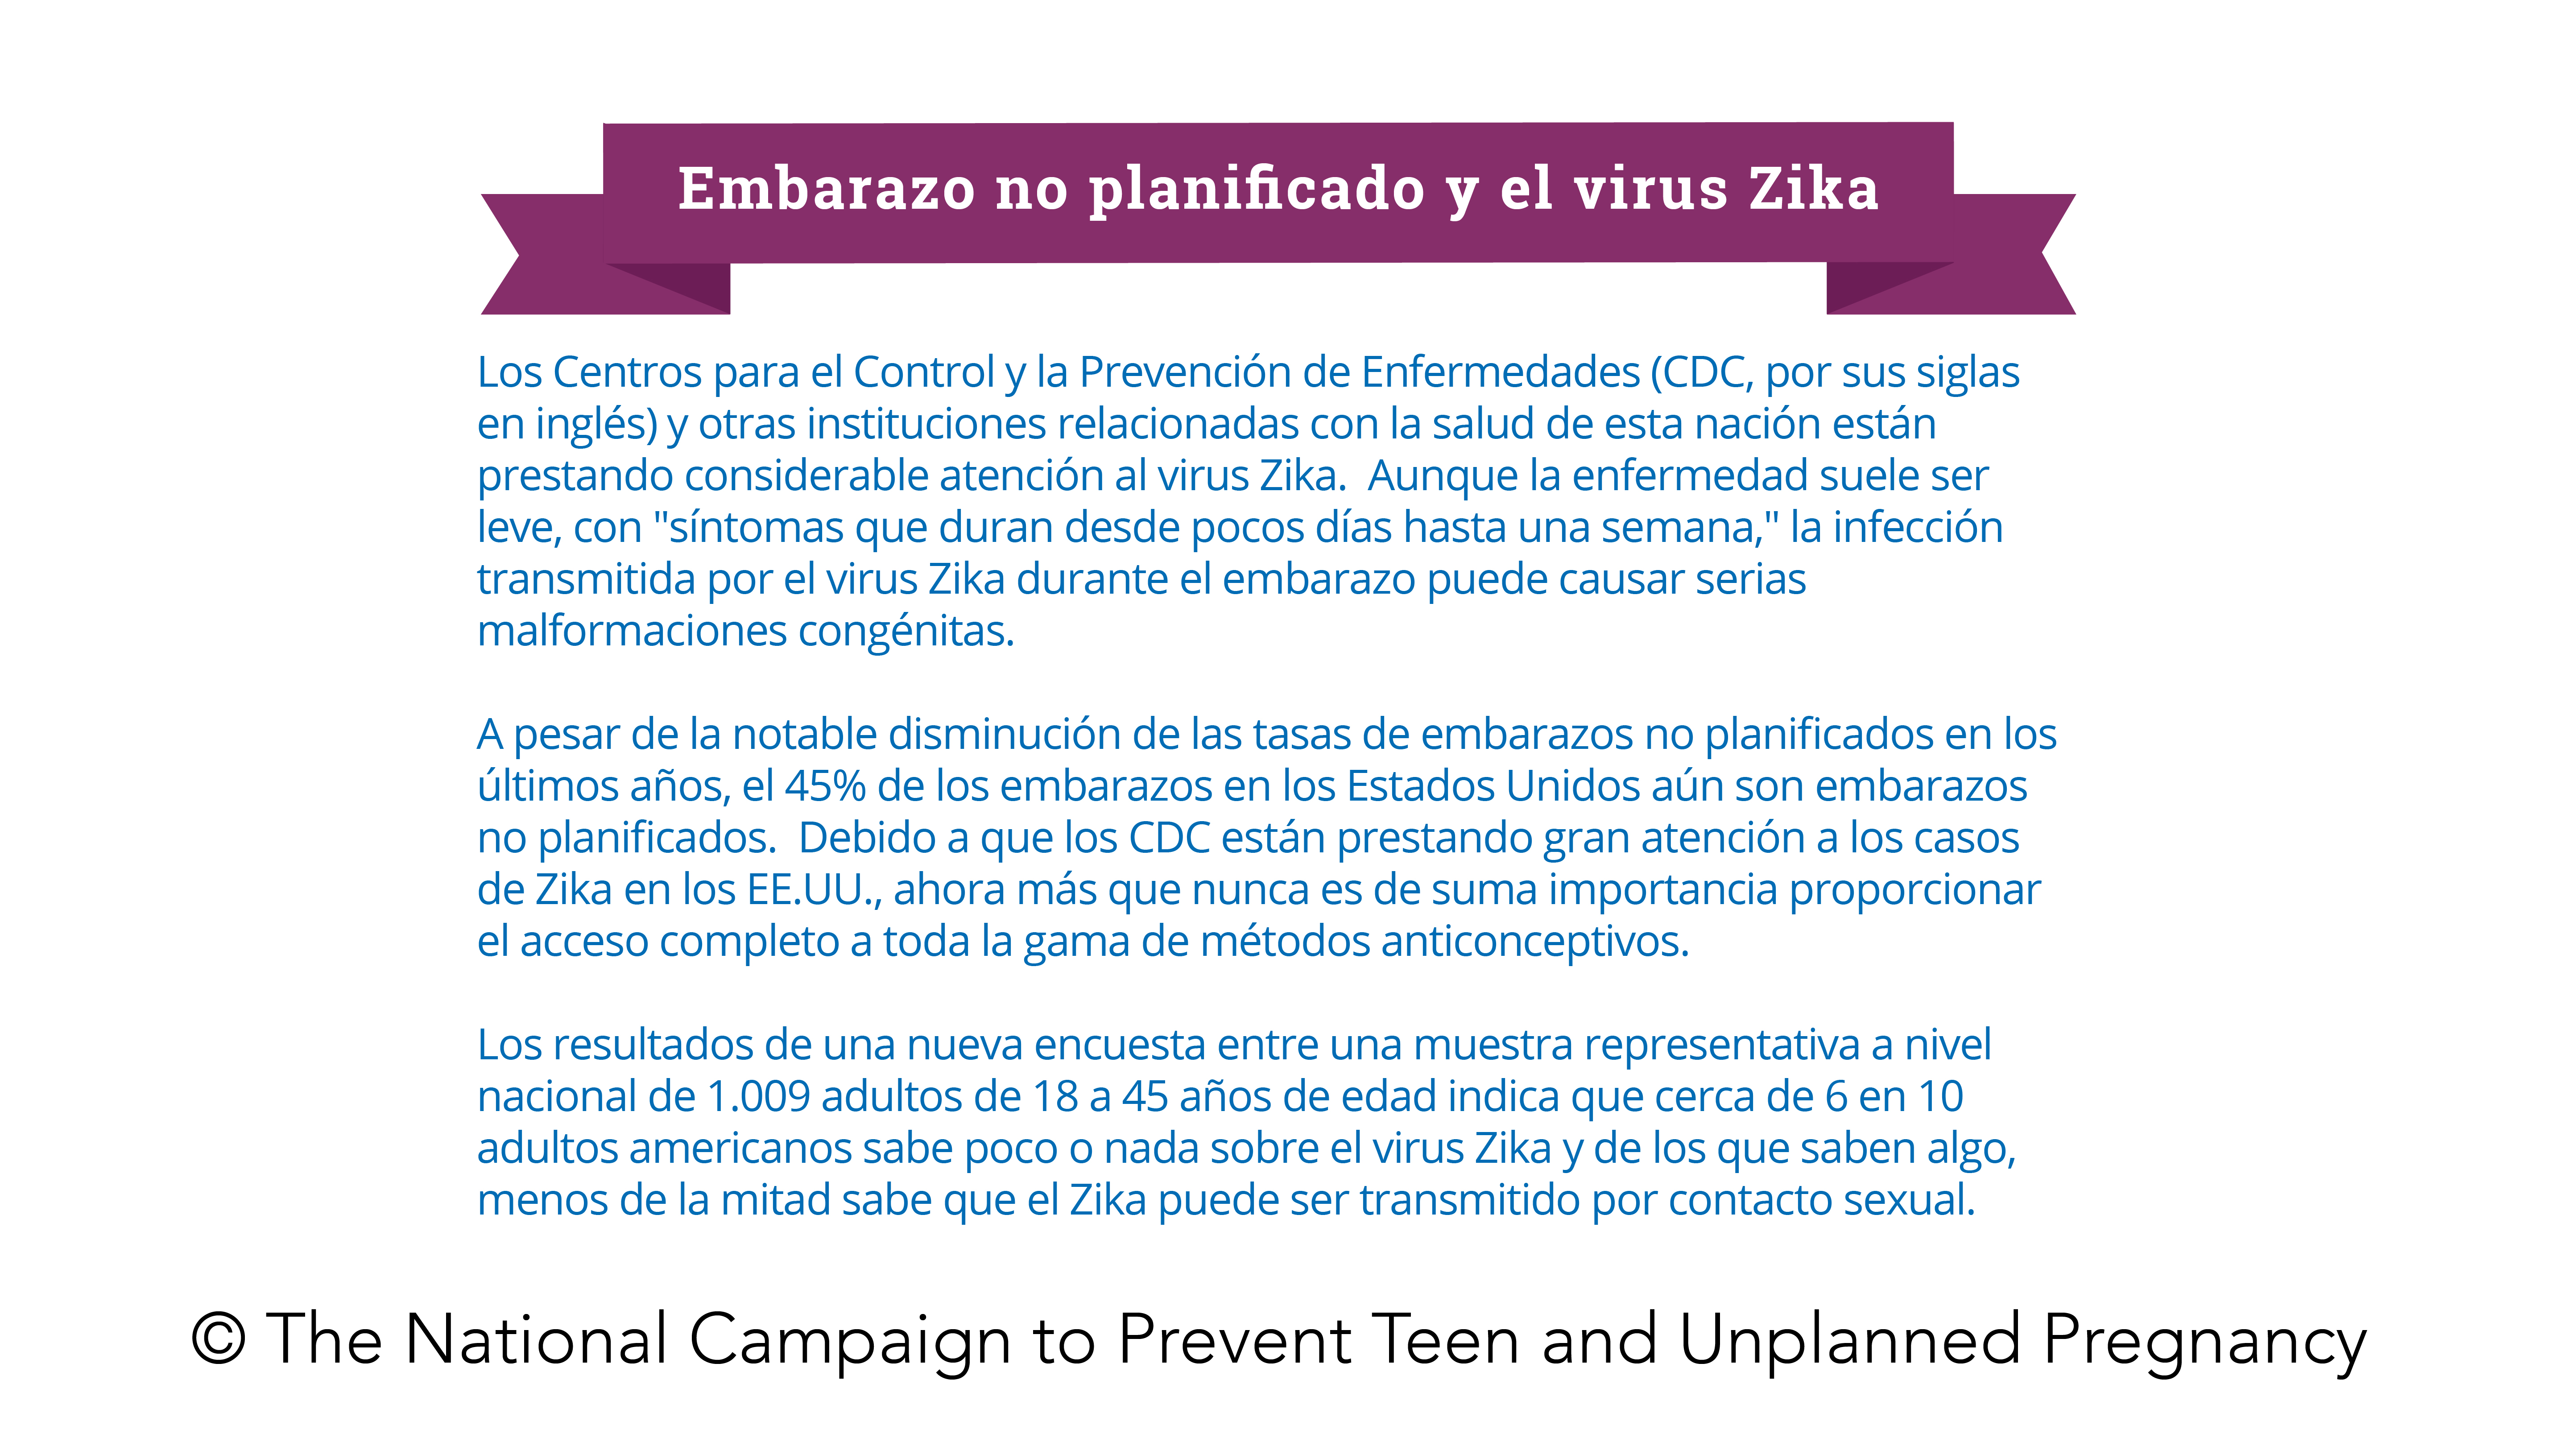 Survey Says: Unplanned Pregnancy and the Zika Virus (June